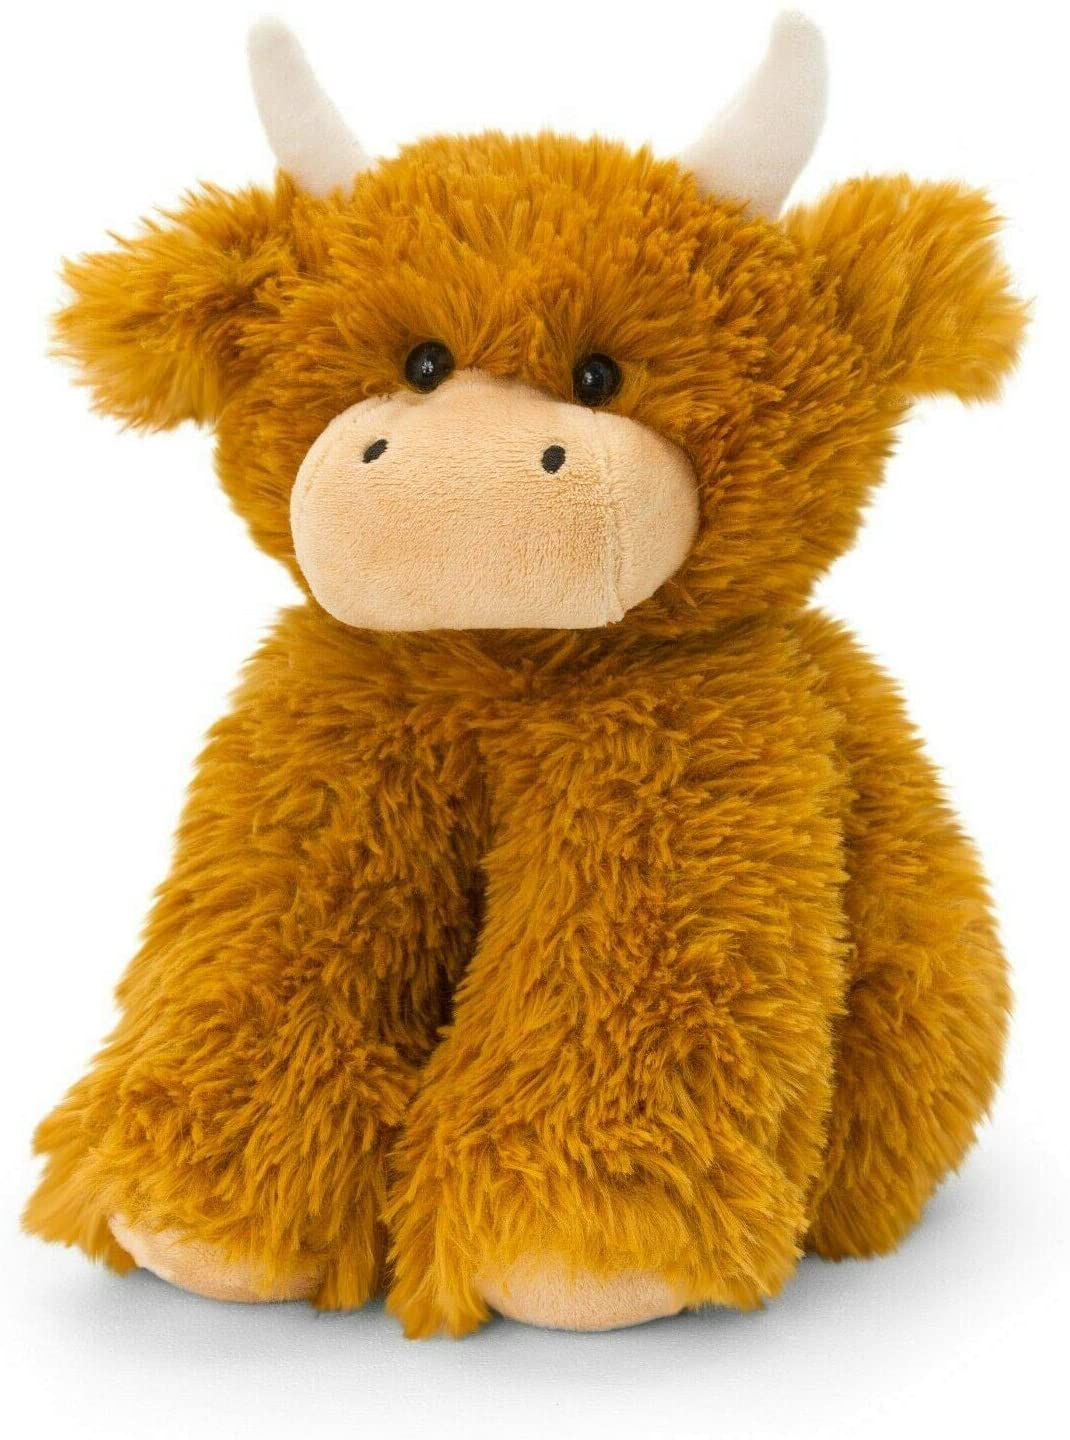 Cuddly Shaggy Highland Cow Soft Toy